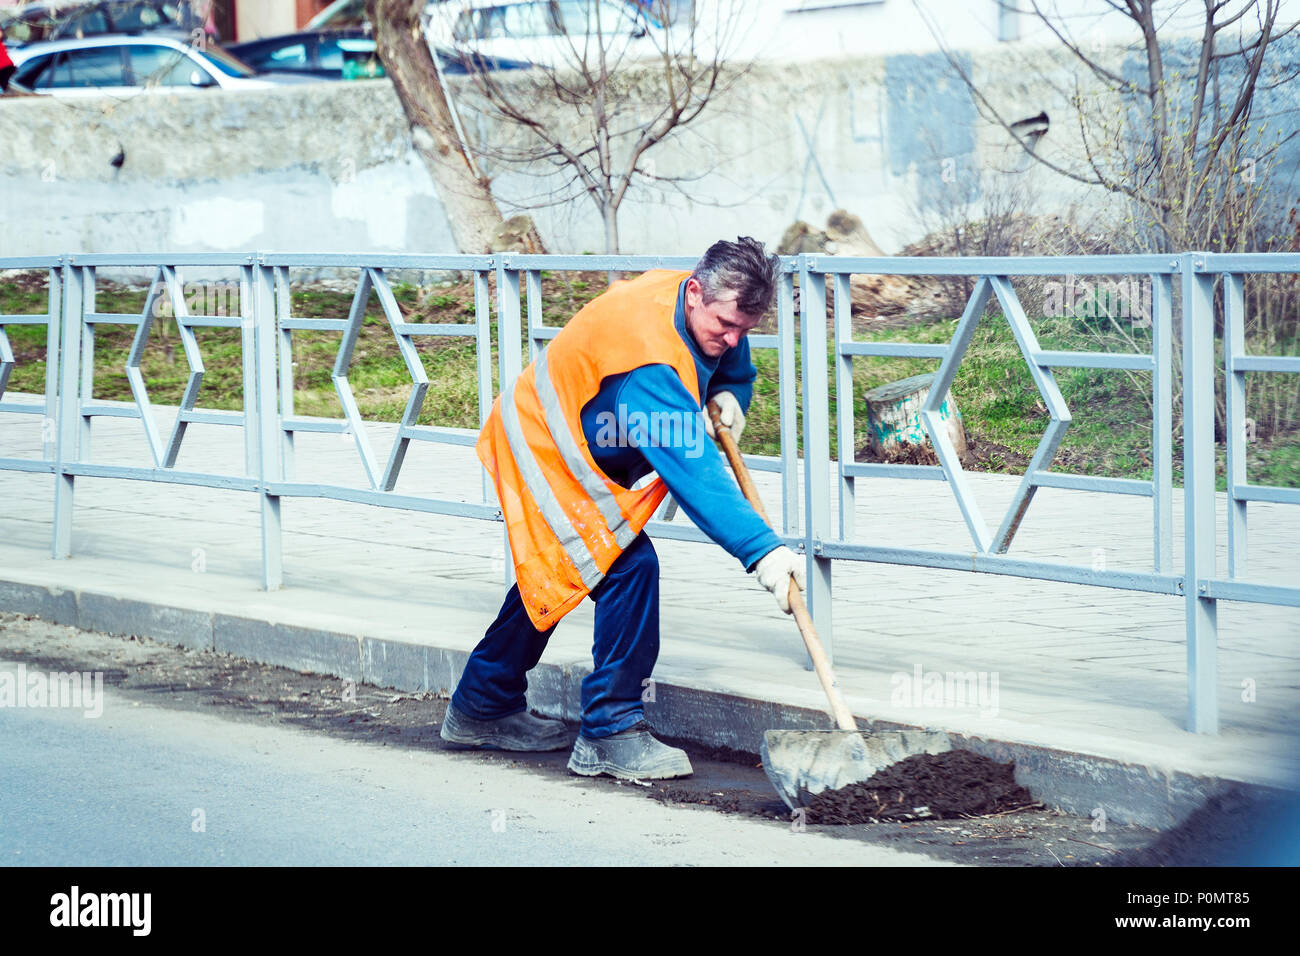 The janitor in an orange uniform cleans the garbage with a shovel on the city street - Stock Image